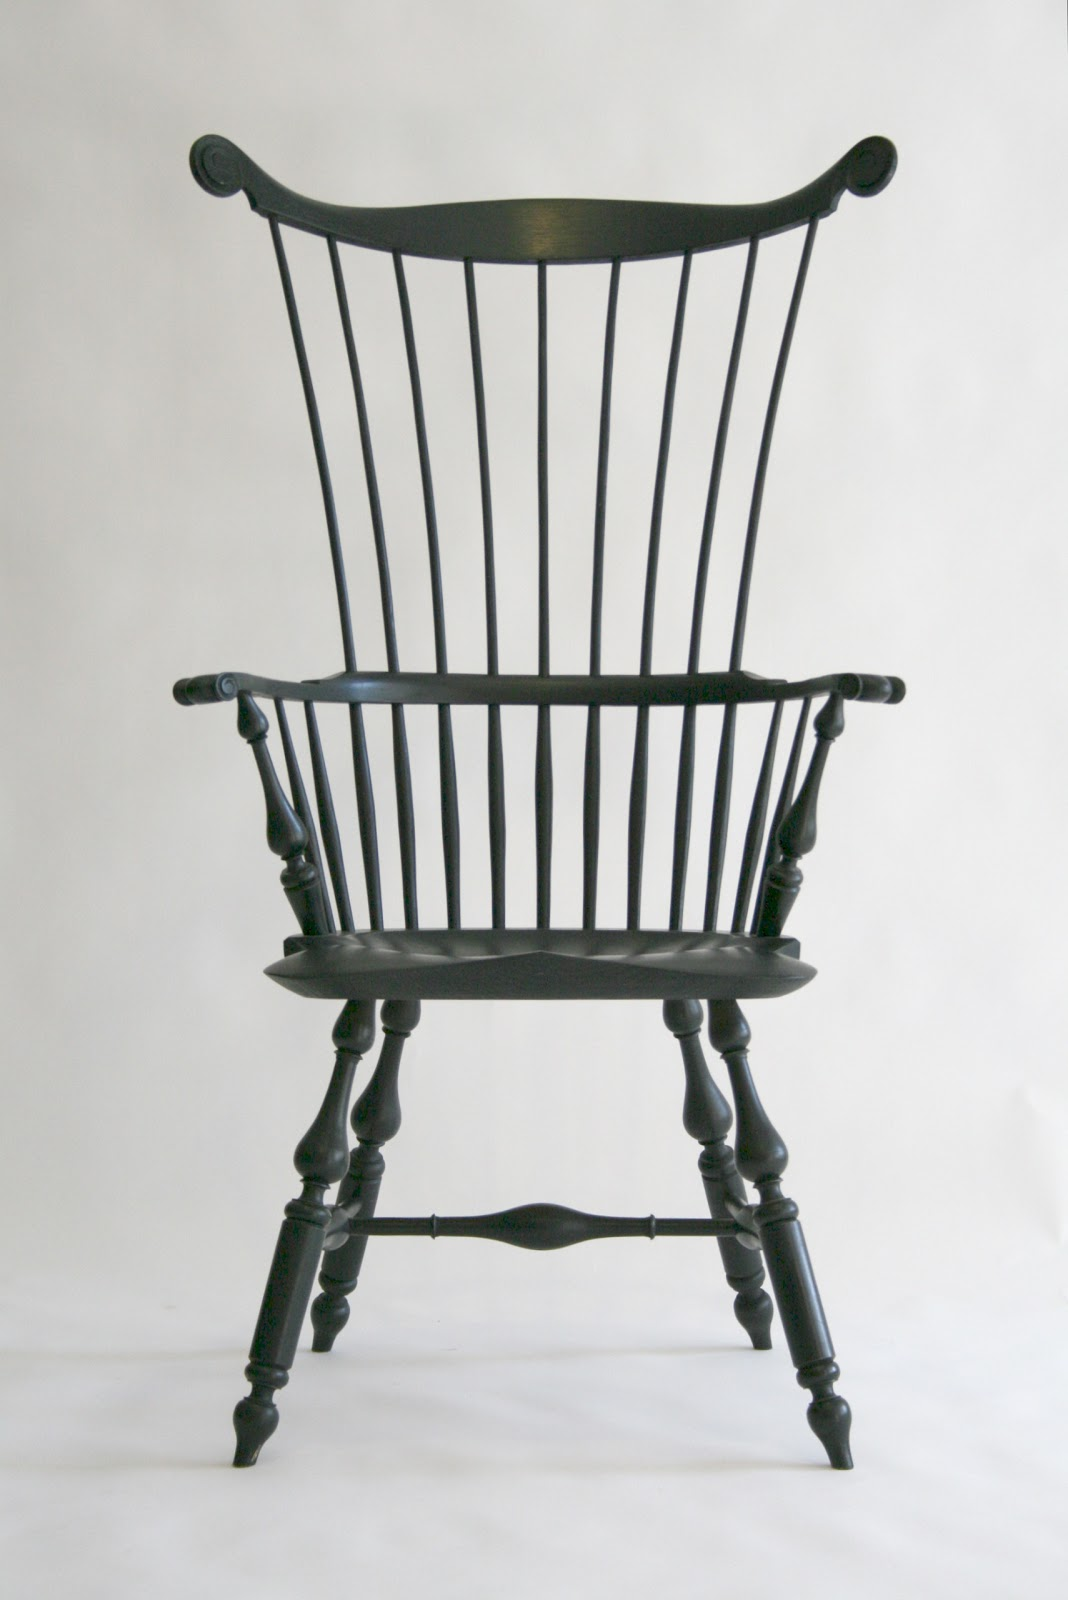 Caleb James Chairmaker Planemaker: Comb Back Windsor Arm Chair